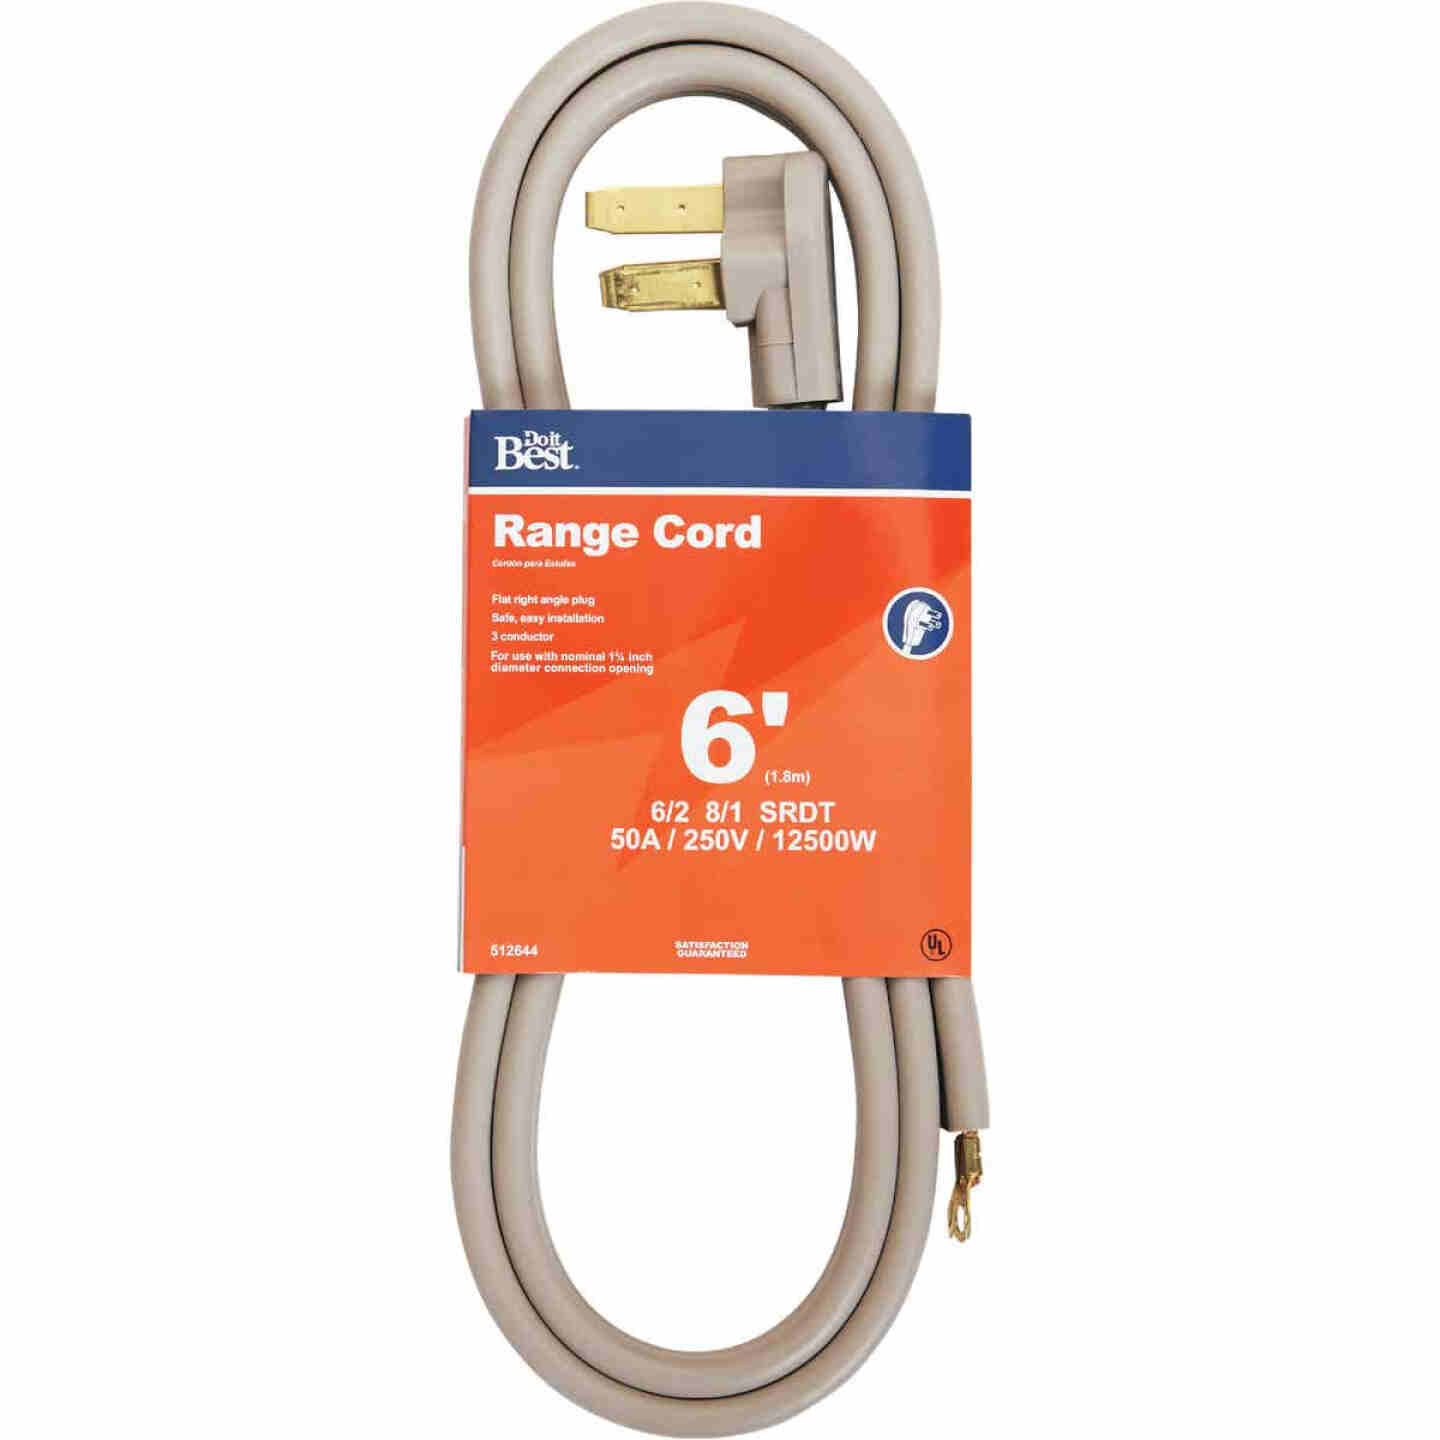 Do it Best 6 Ft. 6/2 + 8/1 Ga. 3-Conductor Range Cord Image 1